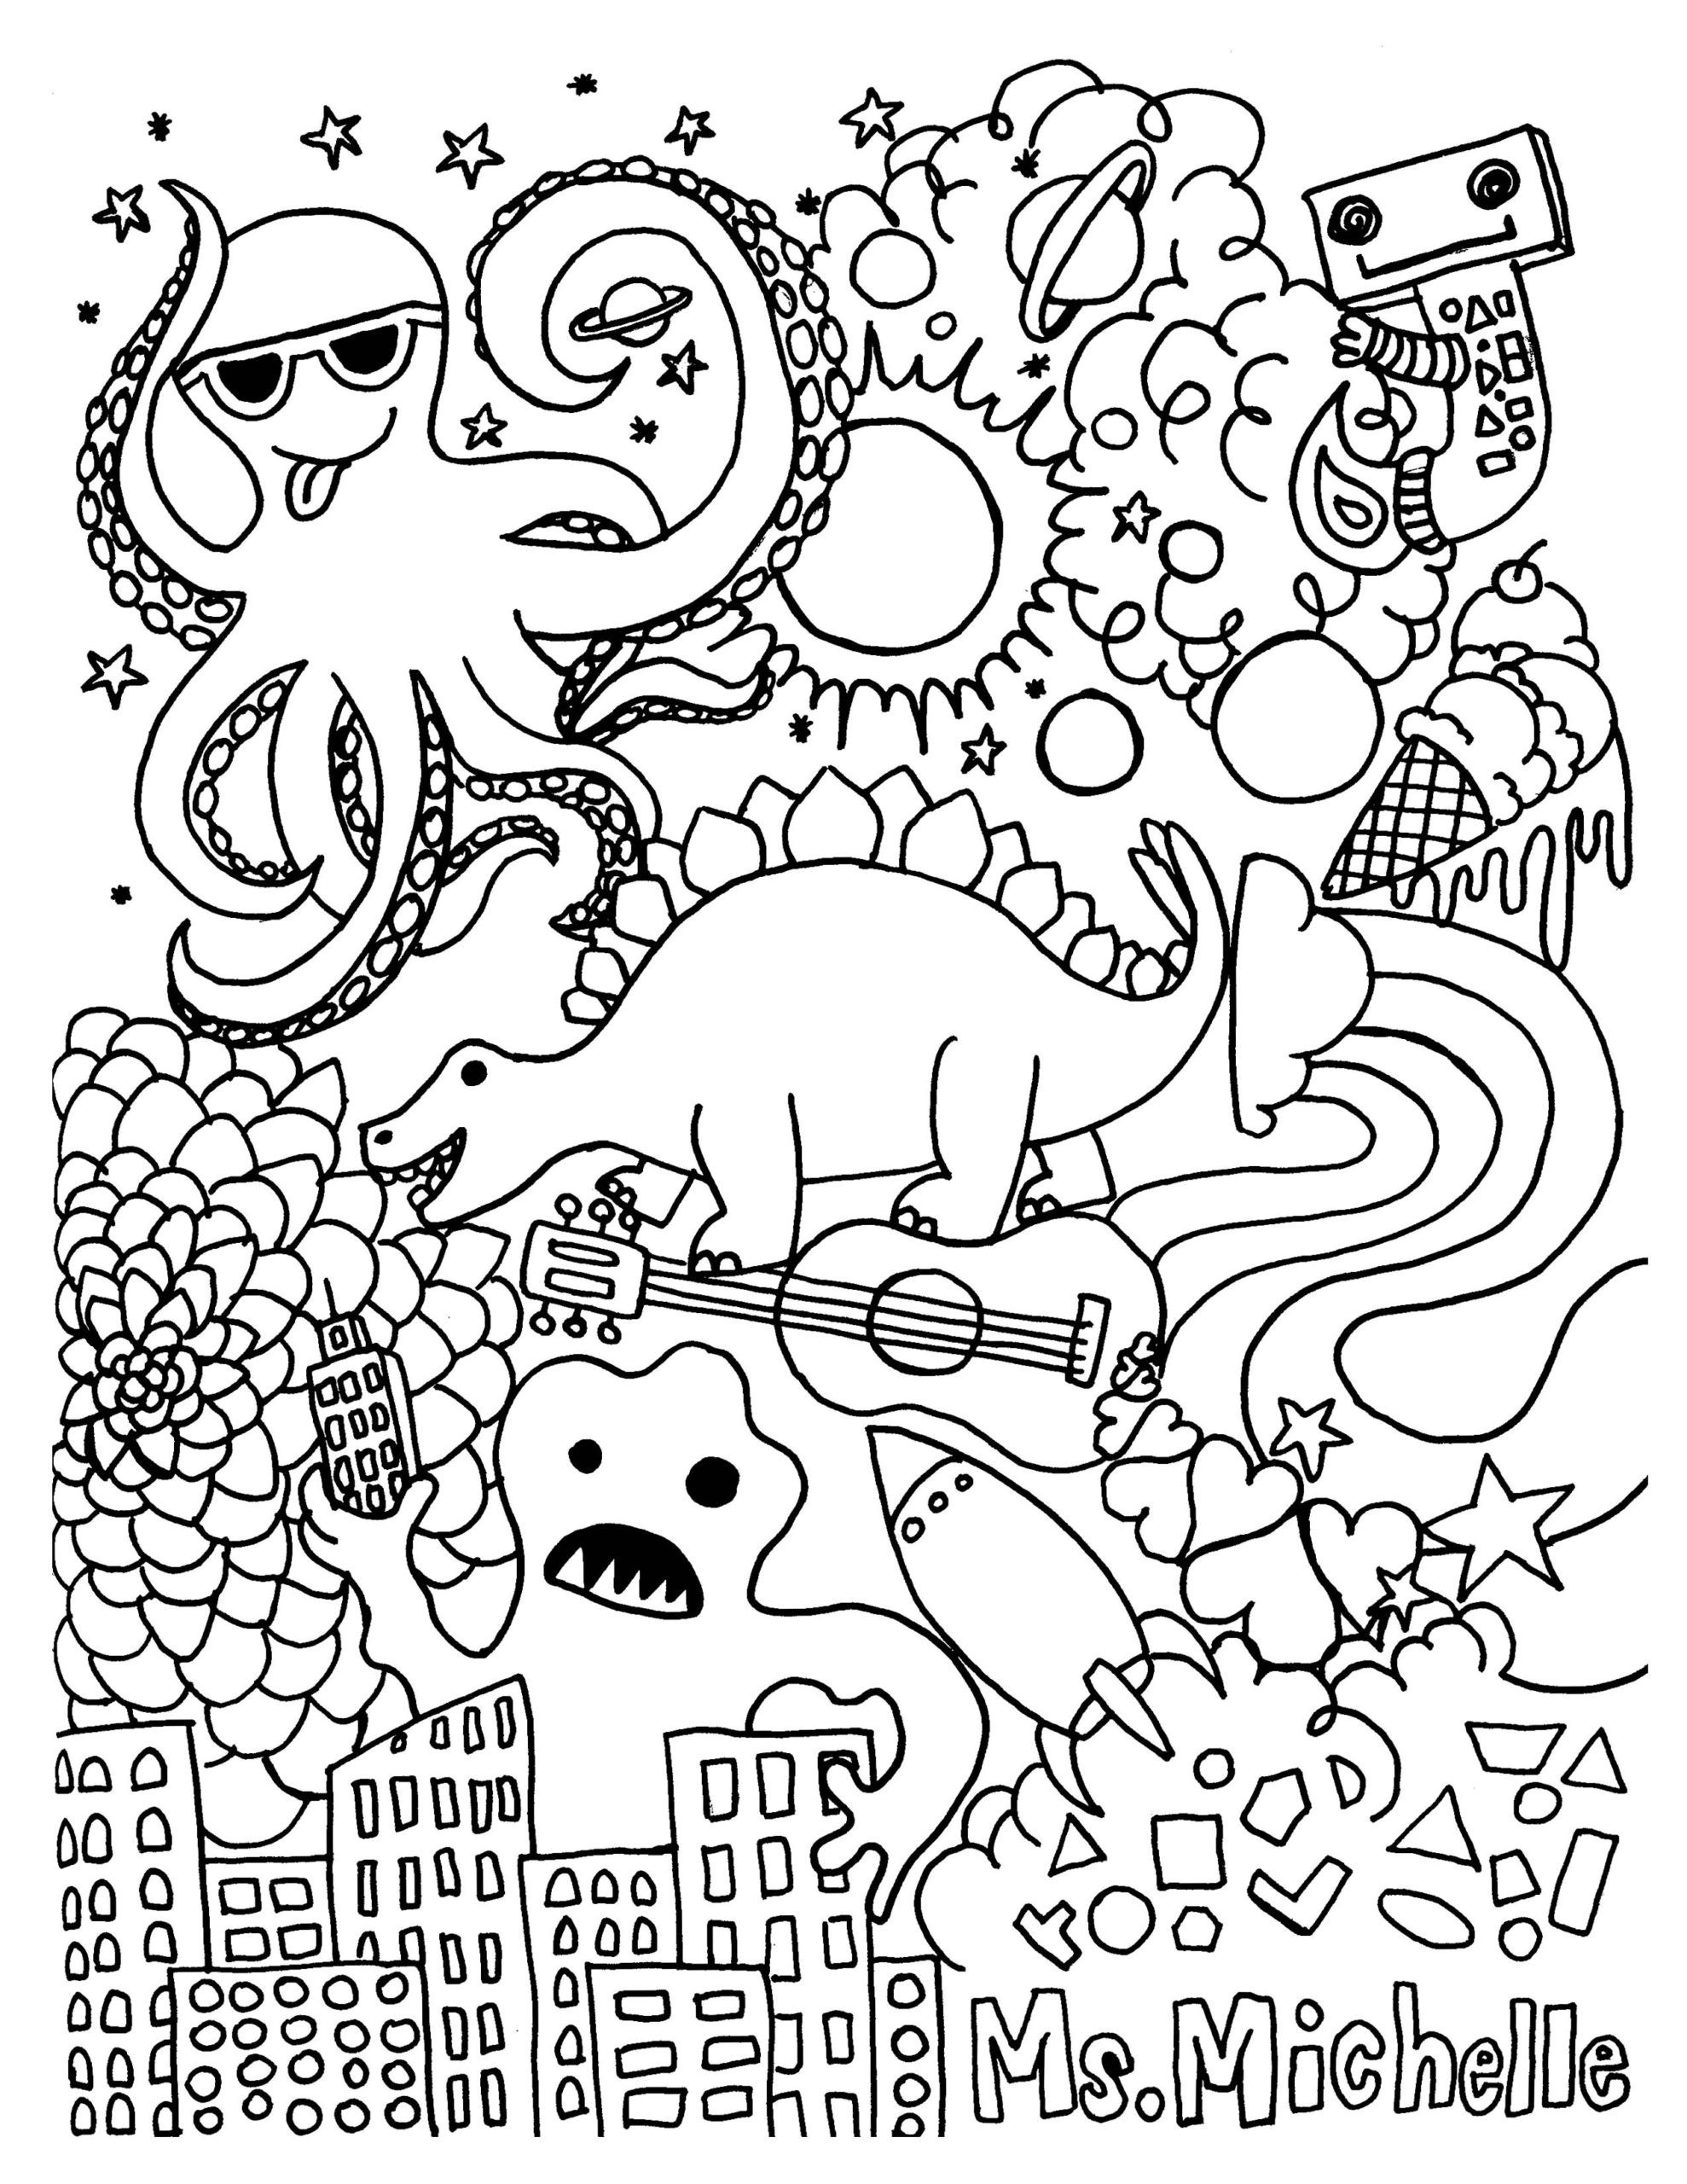 Coloring Worksheets for 3rd Grade Coloring Pages Free Printable Activity for Kids Luxury Book